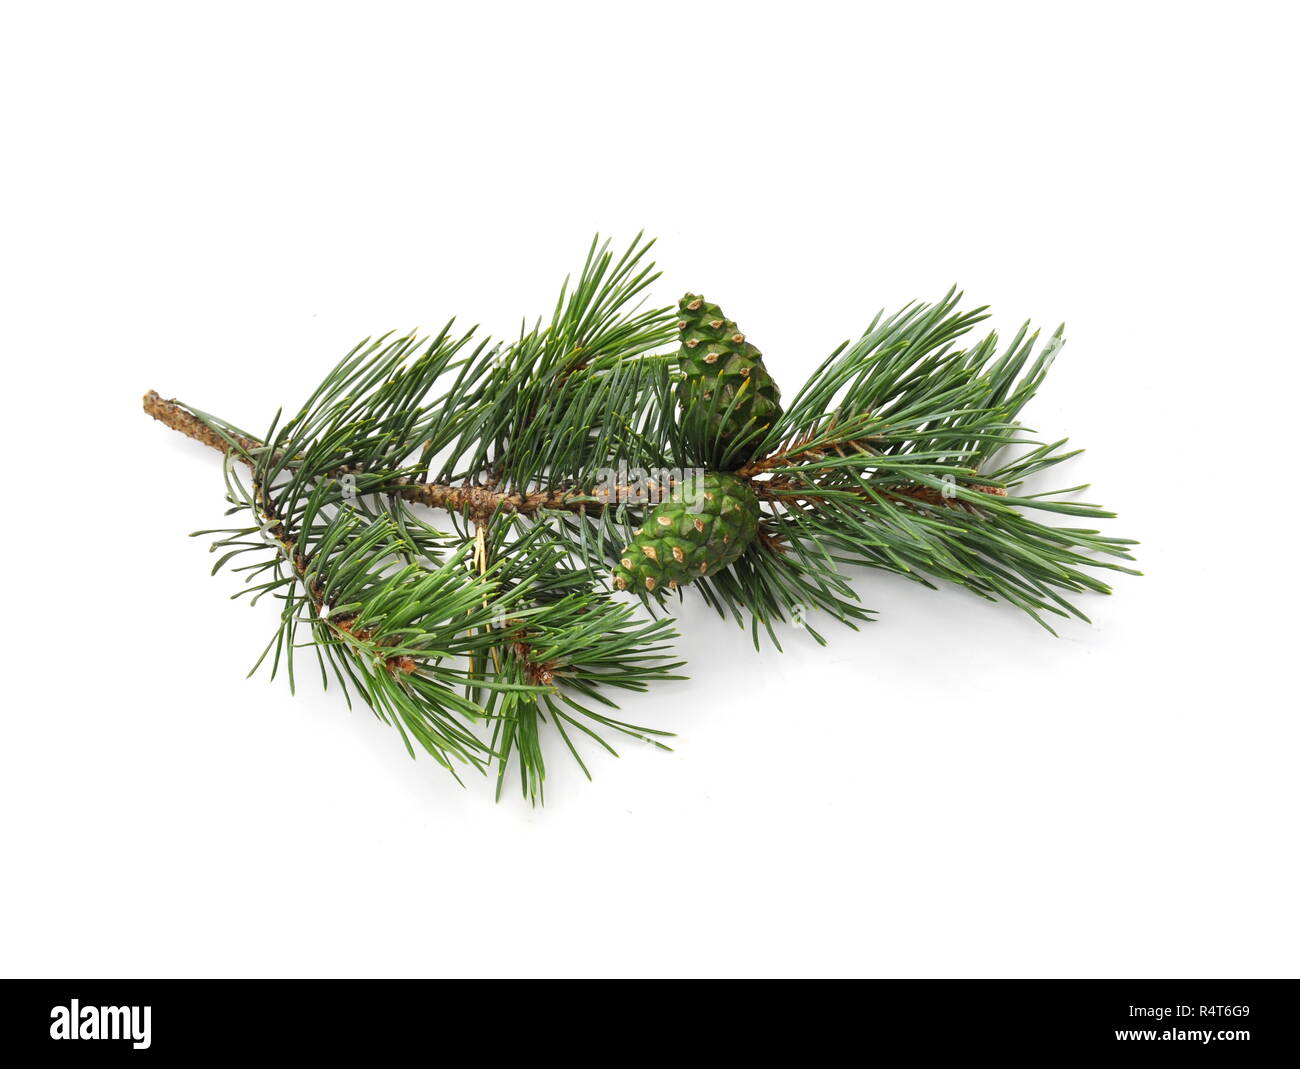 Branch of Pinus sylvestris with green cone on white background - Stock Image